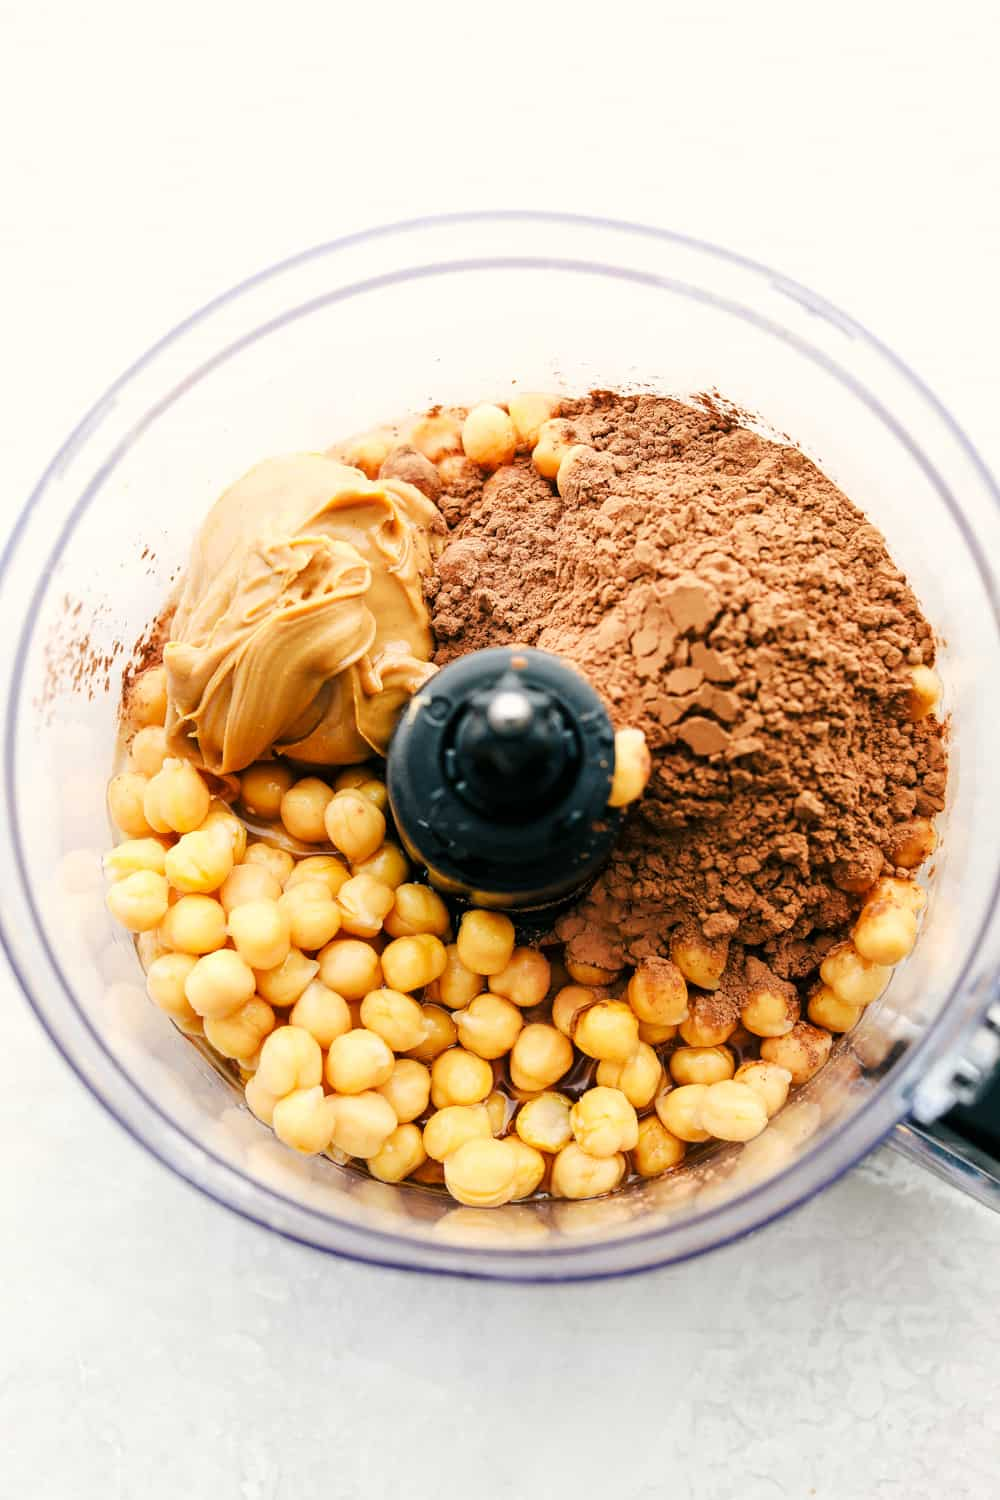 A food processor with the ingredients for chocolate hummus.